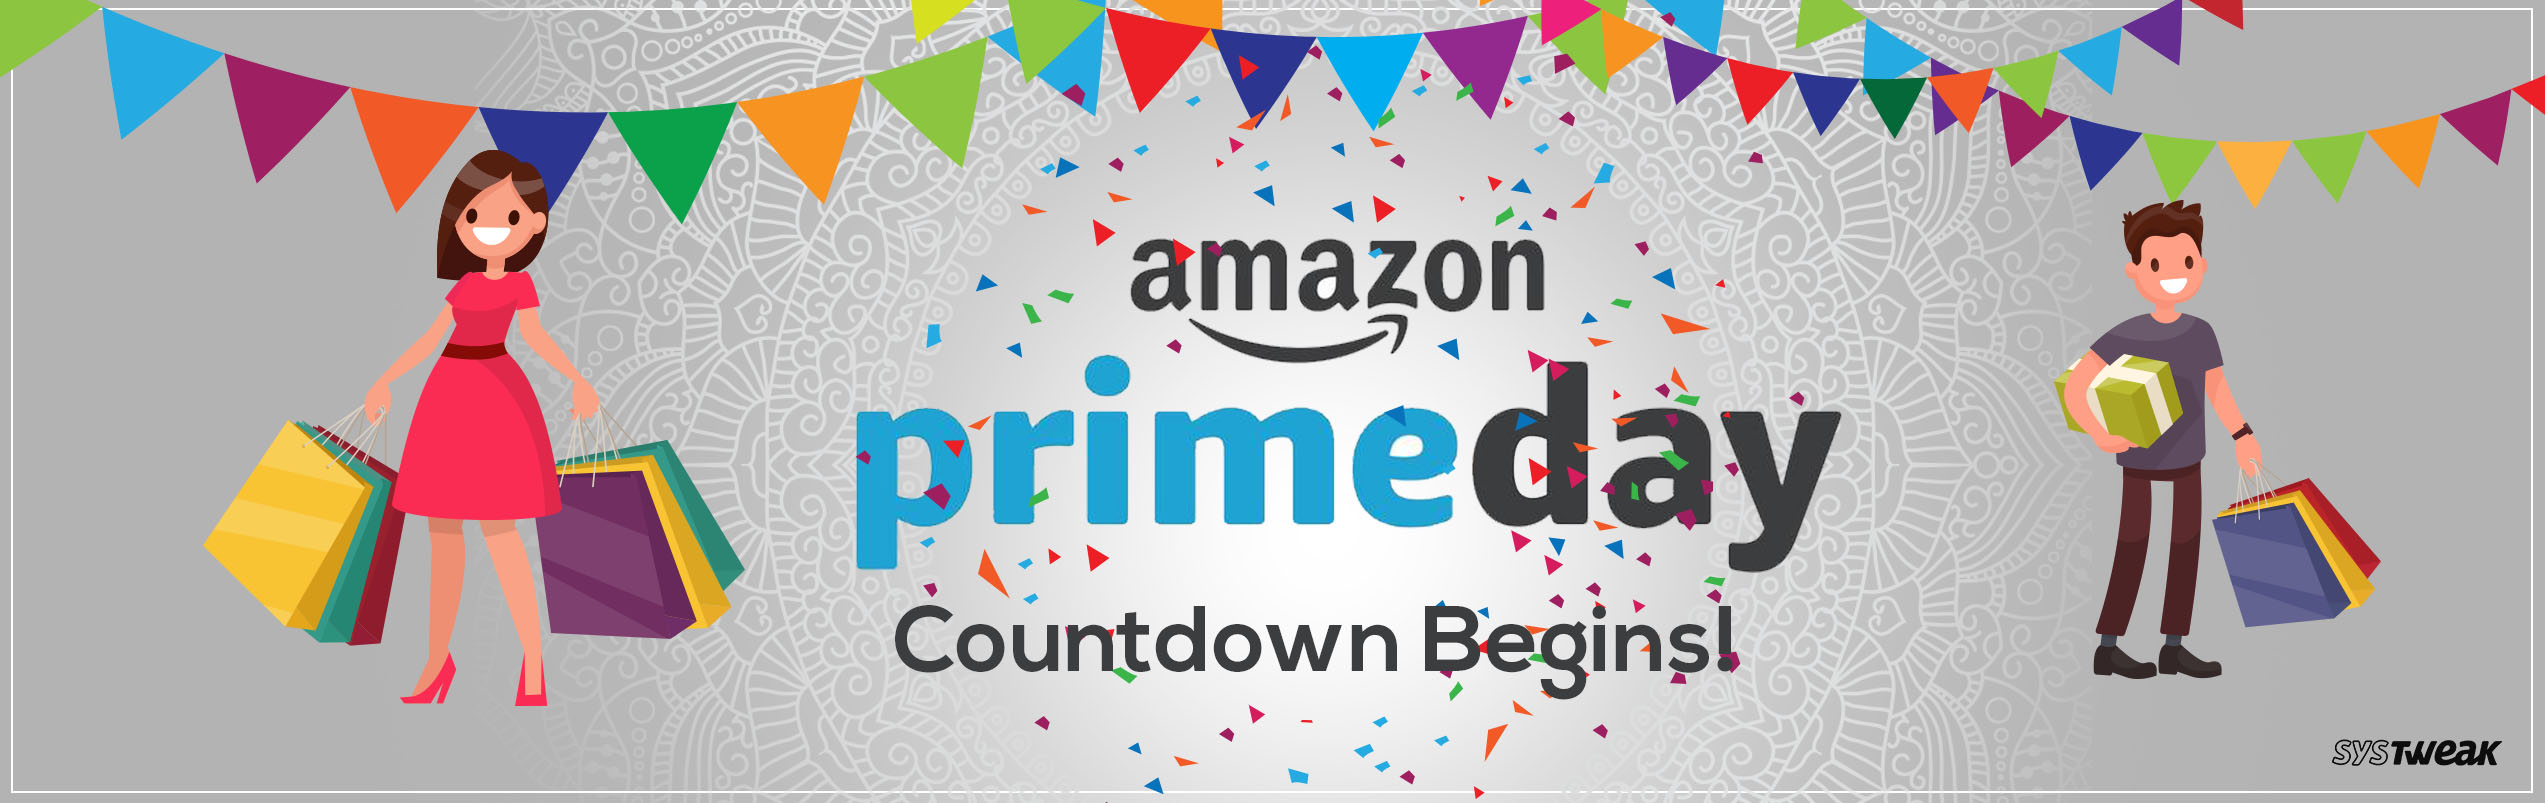 7 Amazon Prime Day Tips to Avail Best Offers and Deals